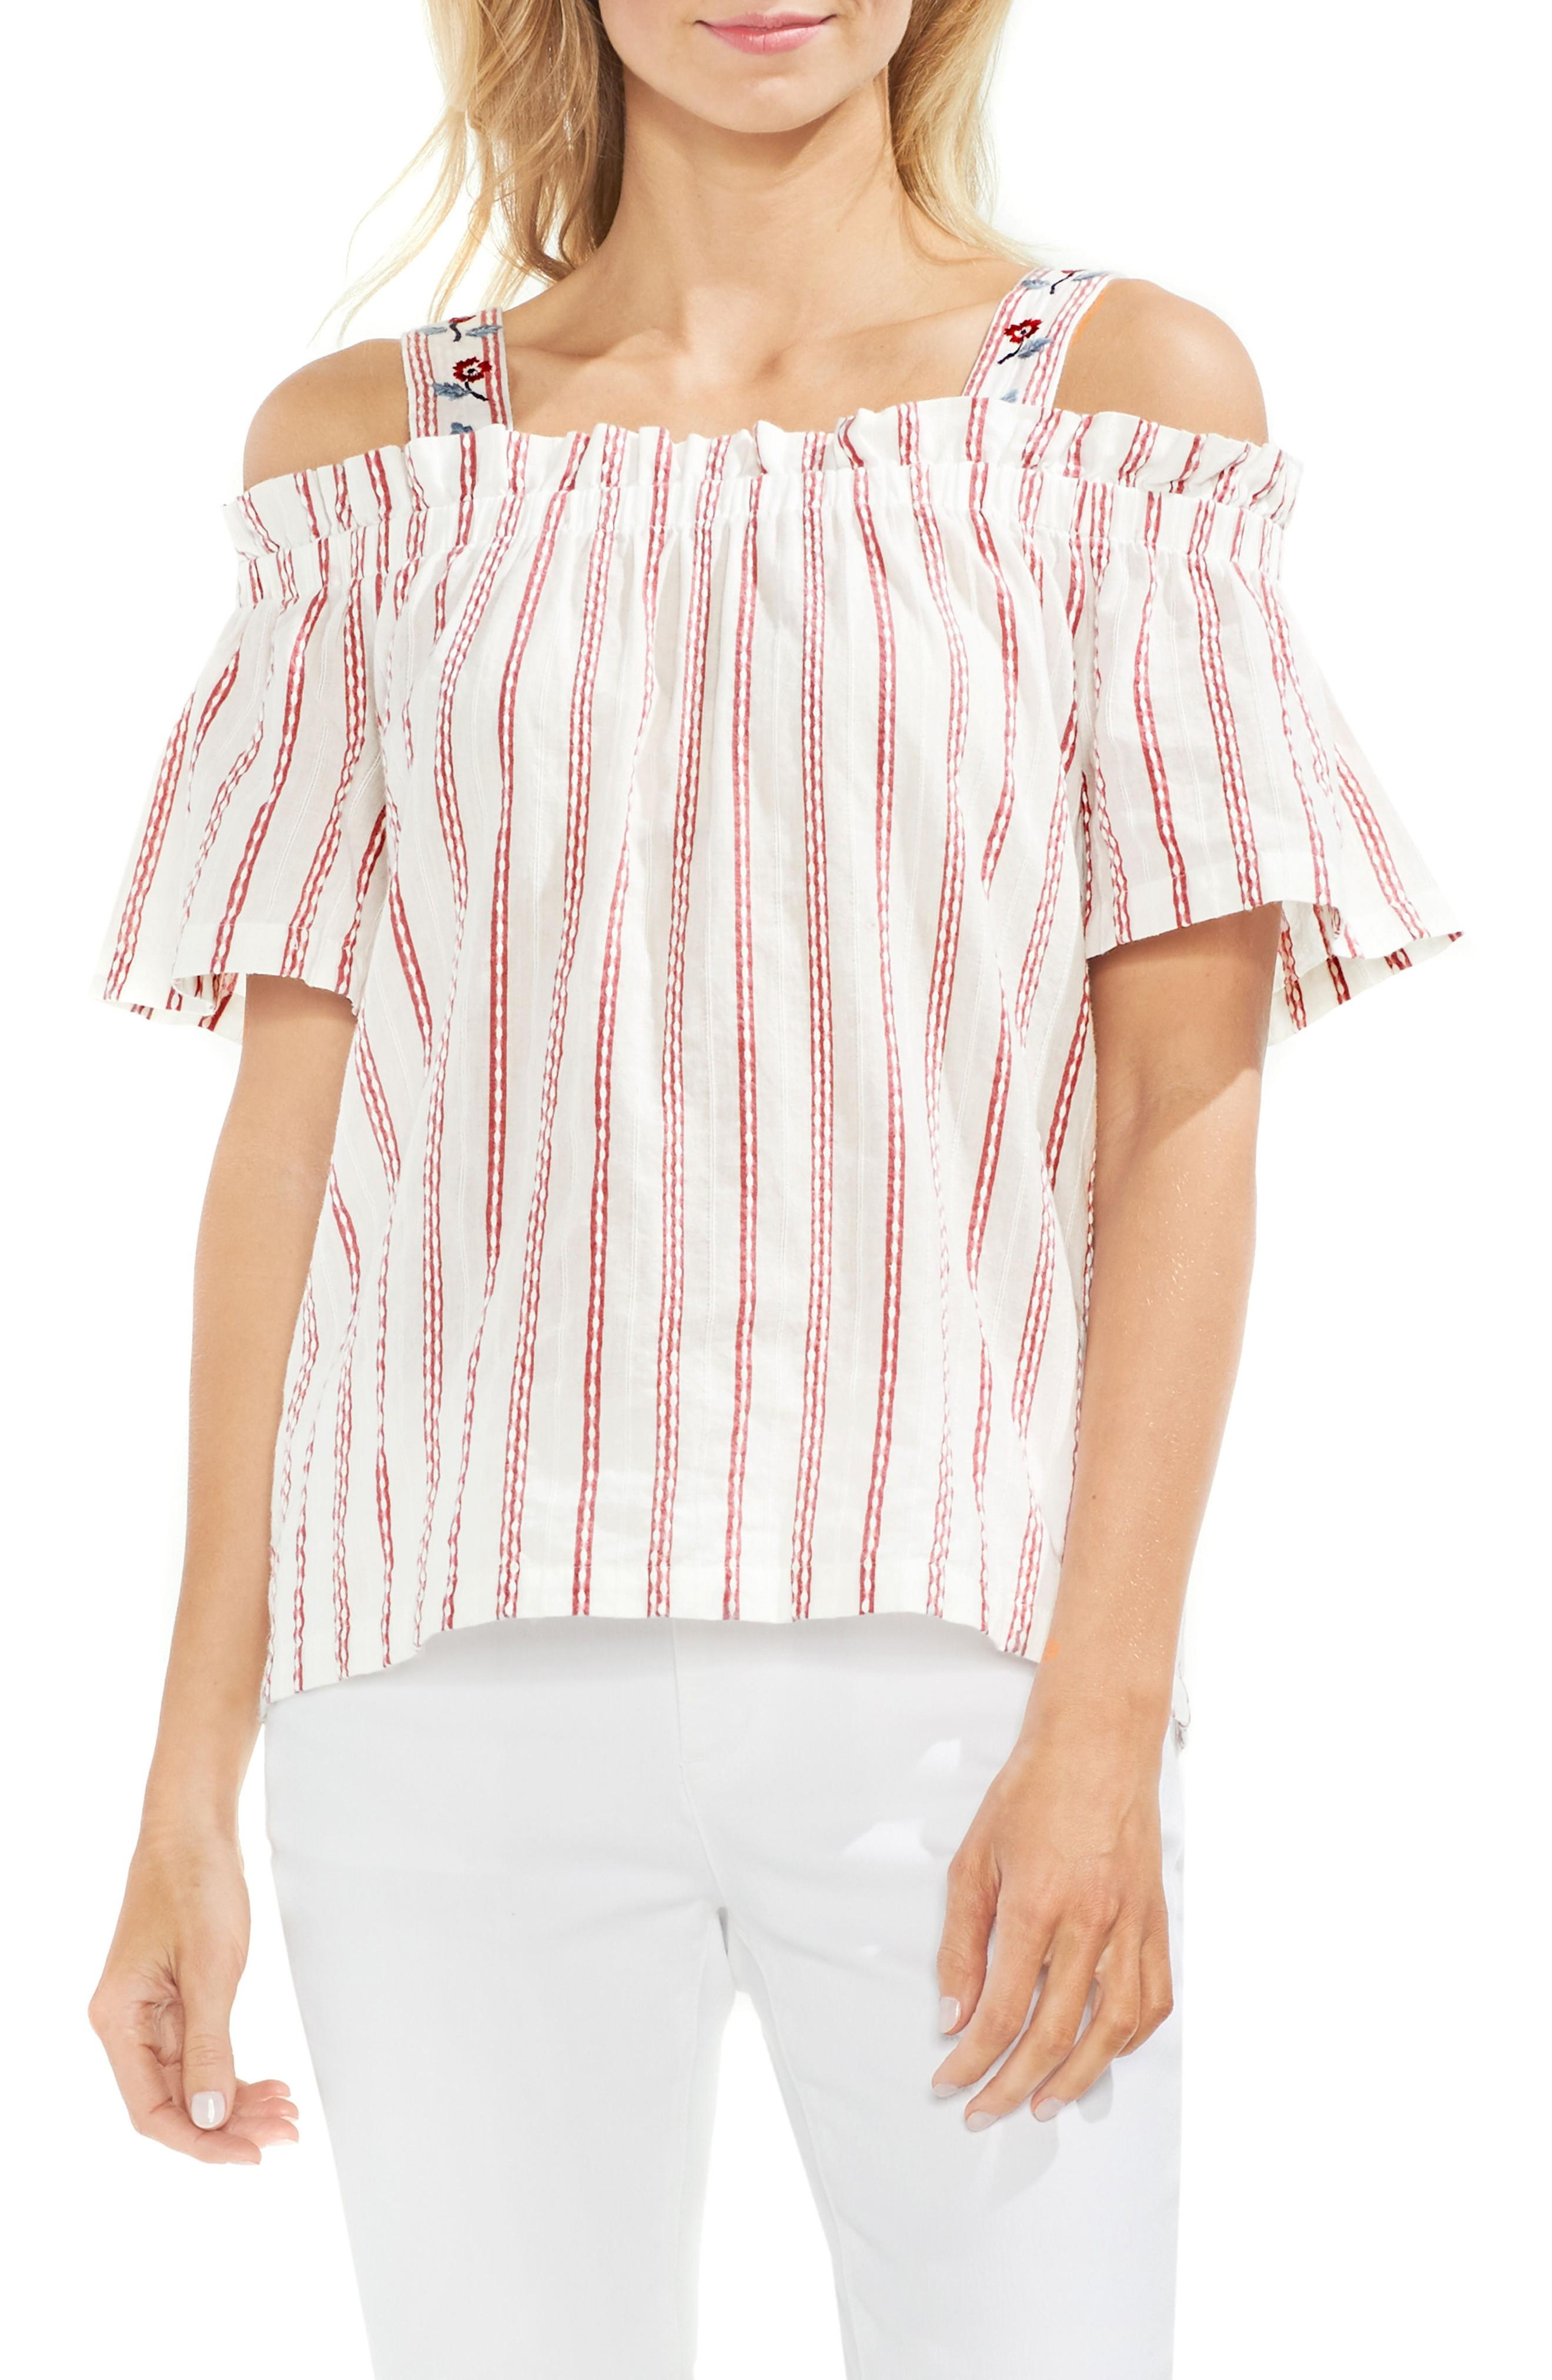 ccfb65049ebb72 ... blouse that features bubble-stitched stripes and embroidered floral  details. Style Name  Vince Camuto Embroidered Bubble Stripe Cold Shoulder  Top.